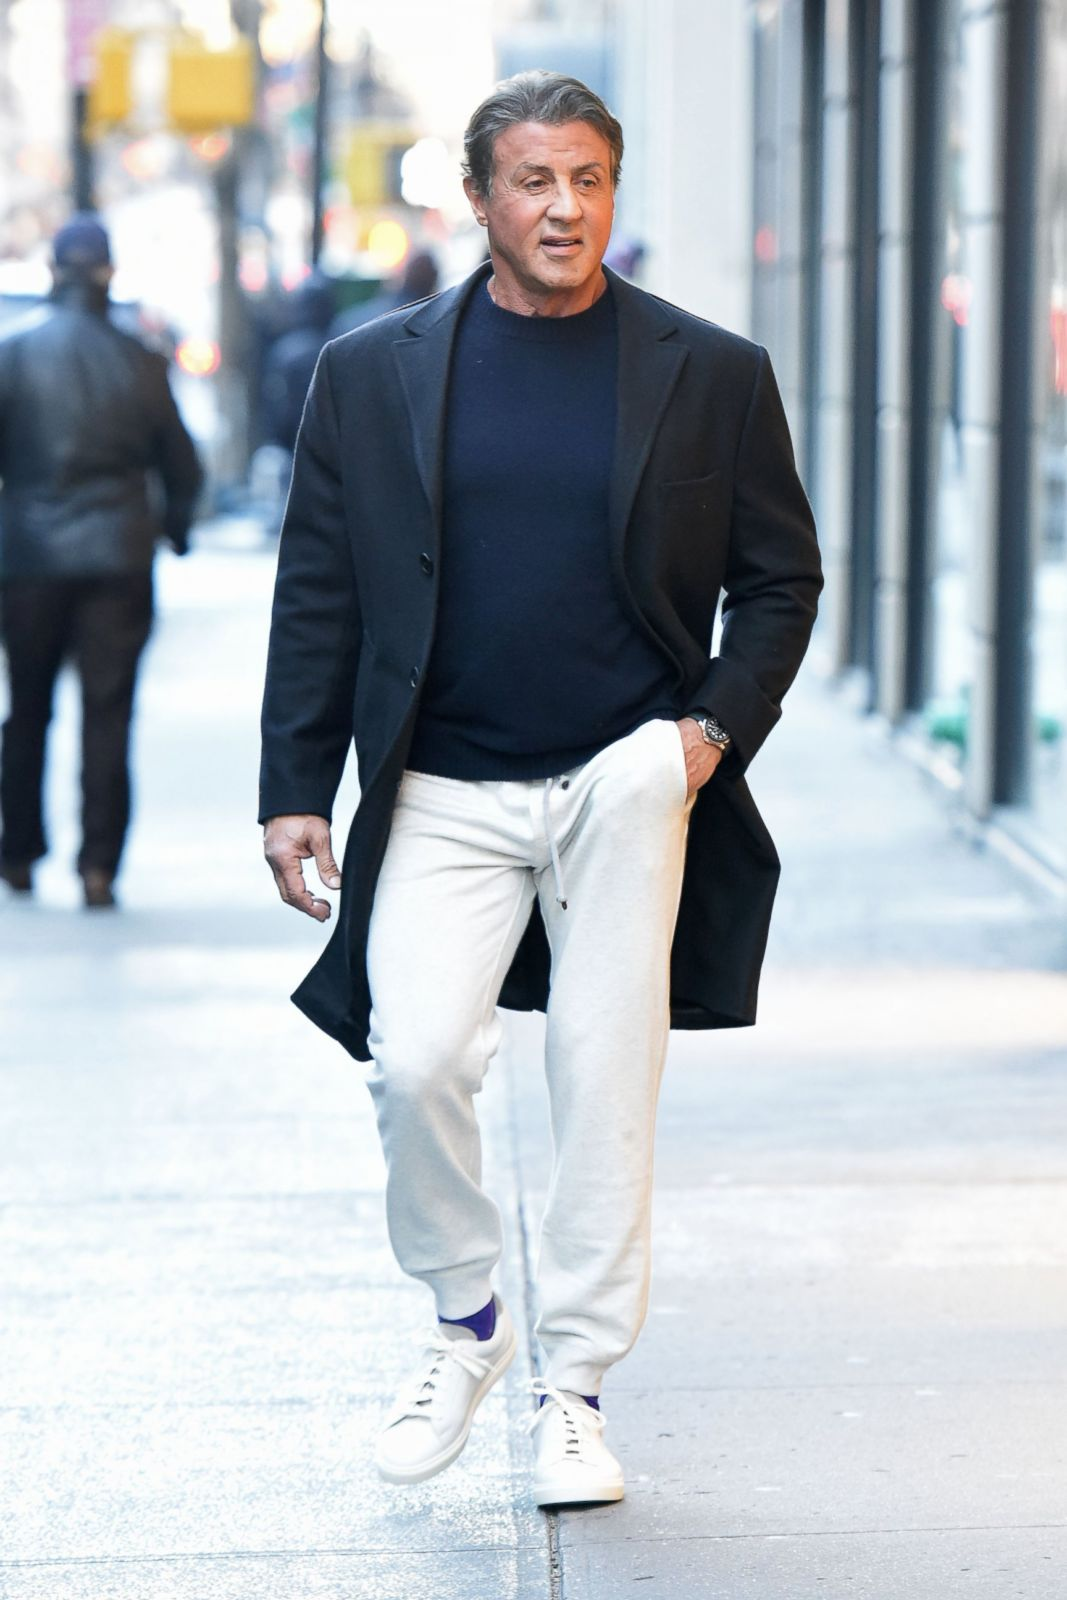 Sylvester Stallone Goes Casual in New York Picture | Fab ...